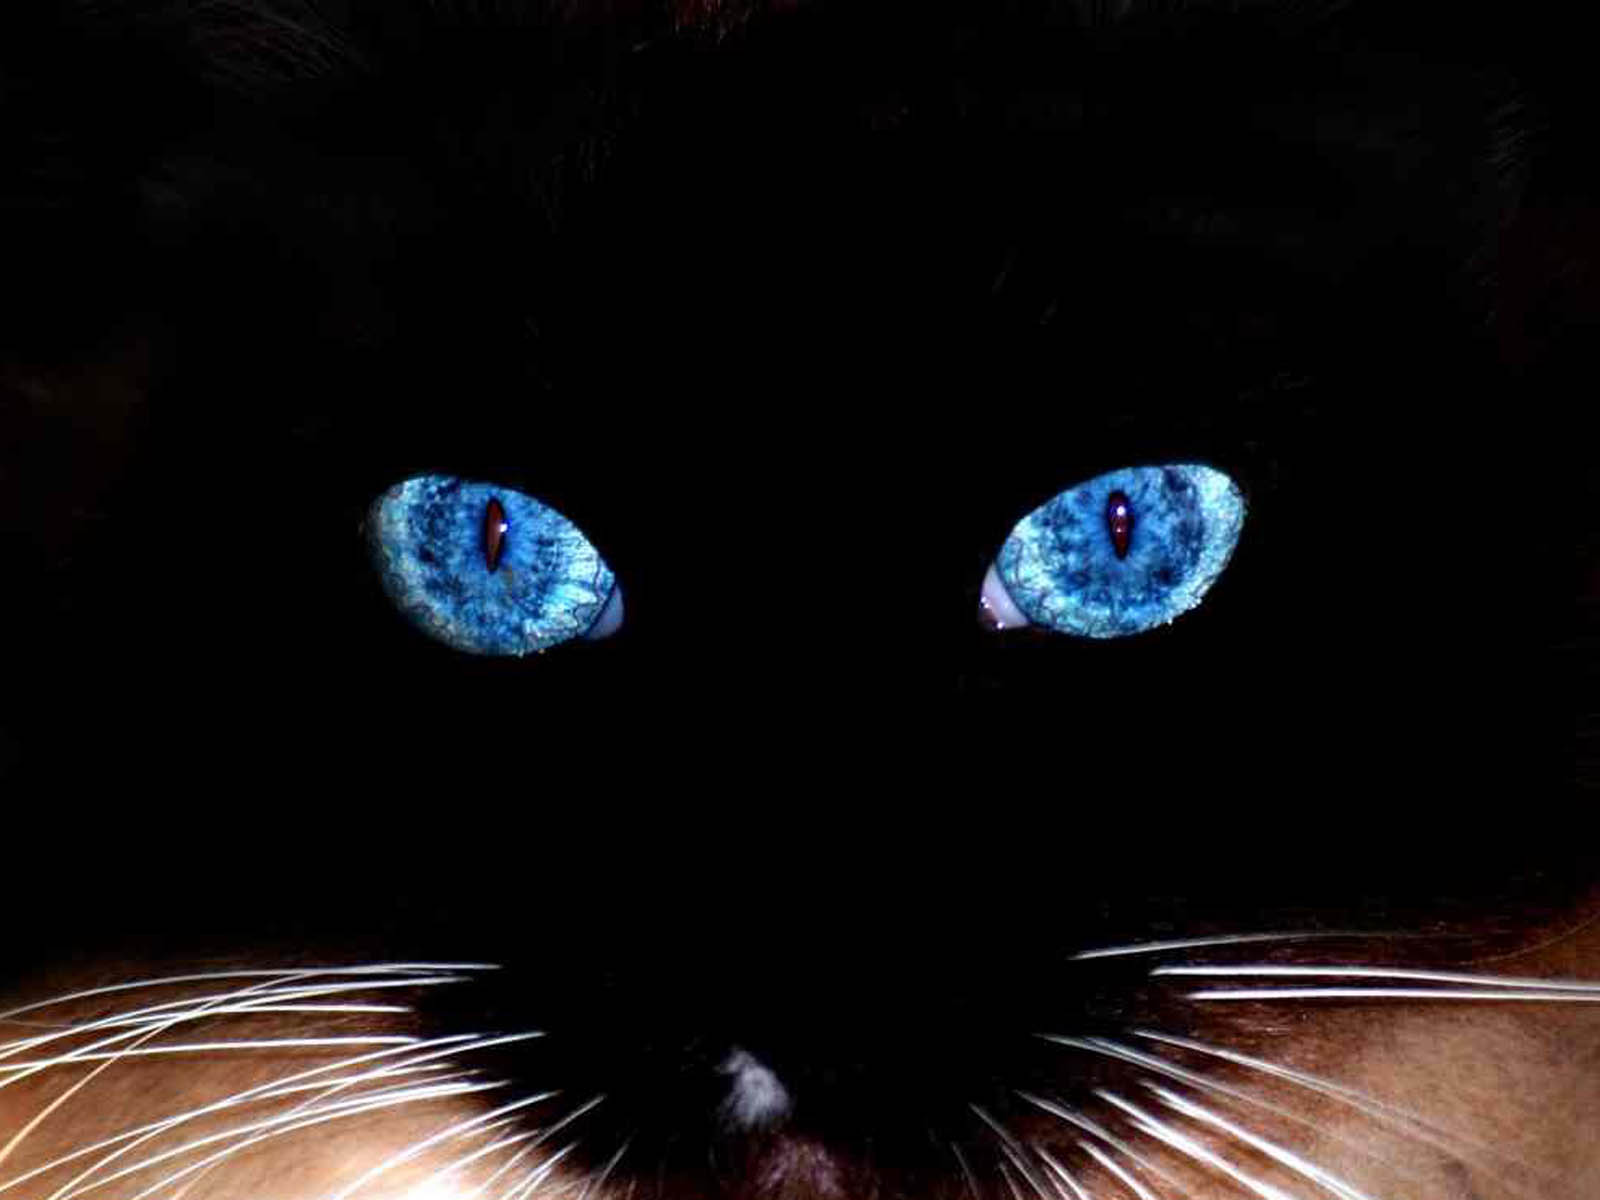 wallpapers collections: black cat blue eyes